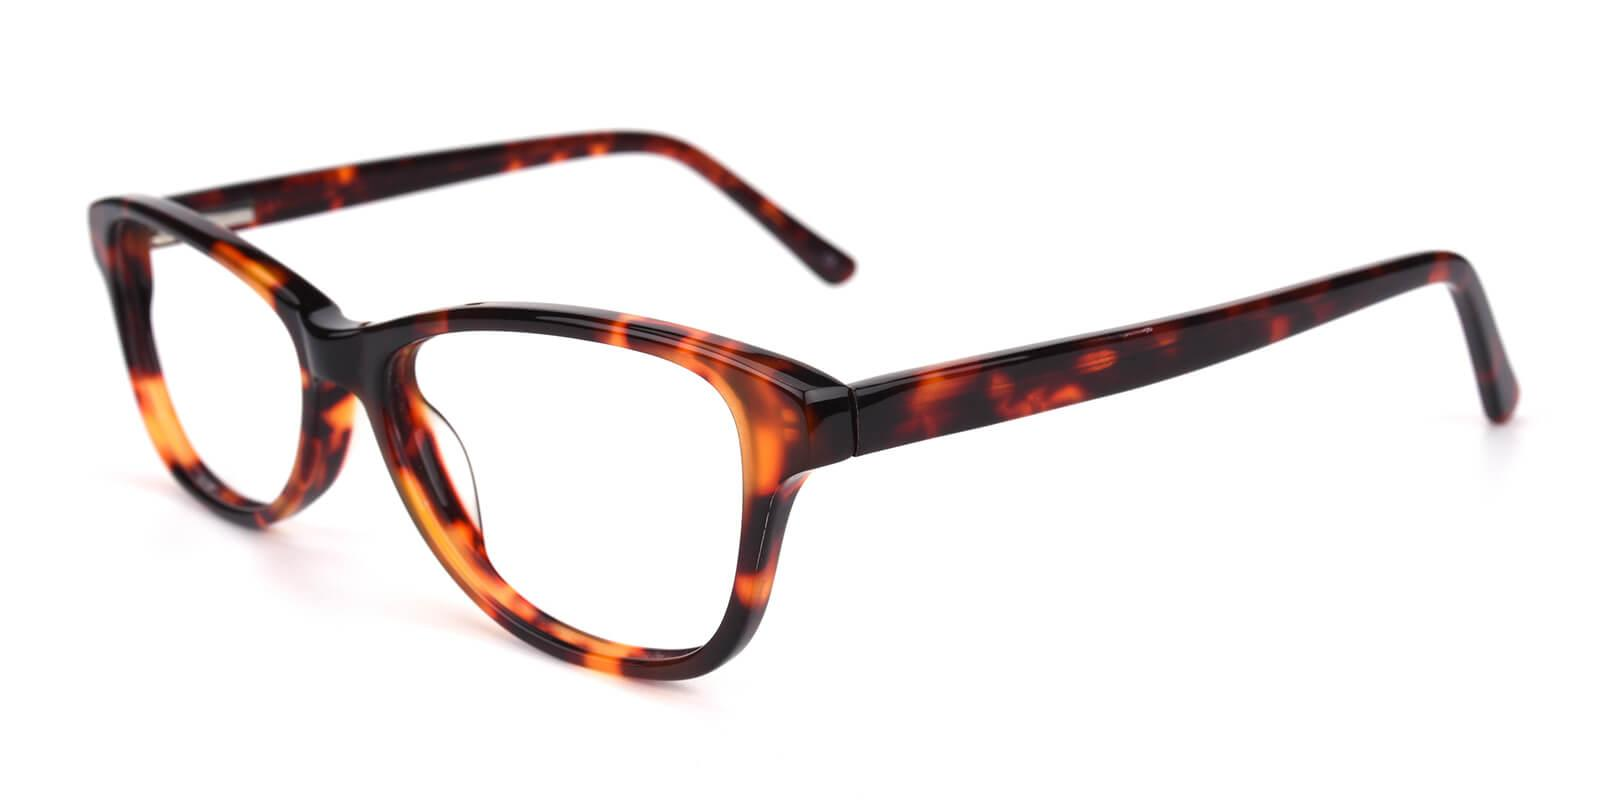 Marind-Tortoise-Cat-Acetate-Eyeglasses-additional1